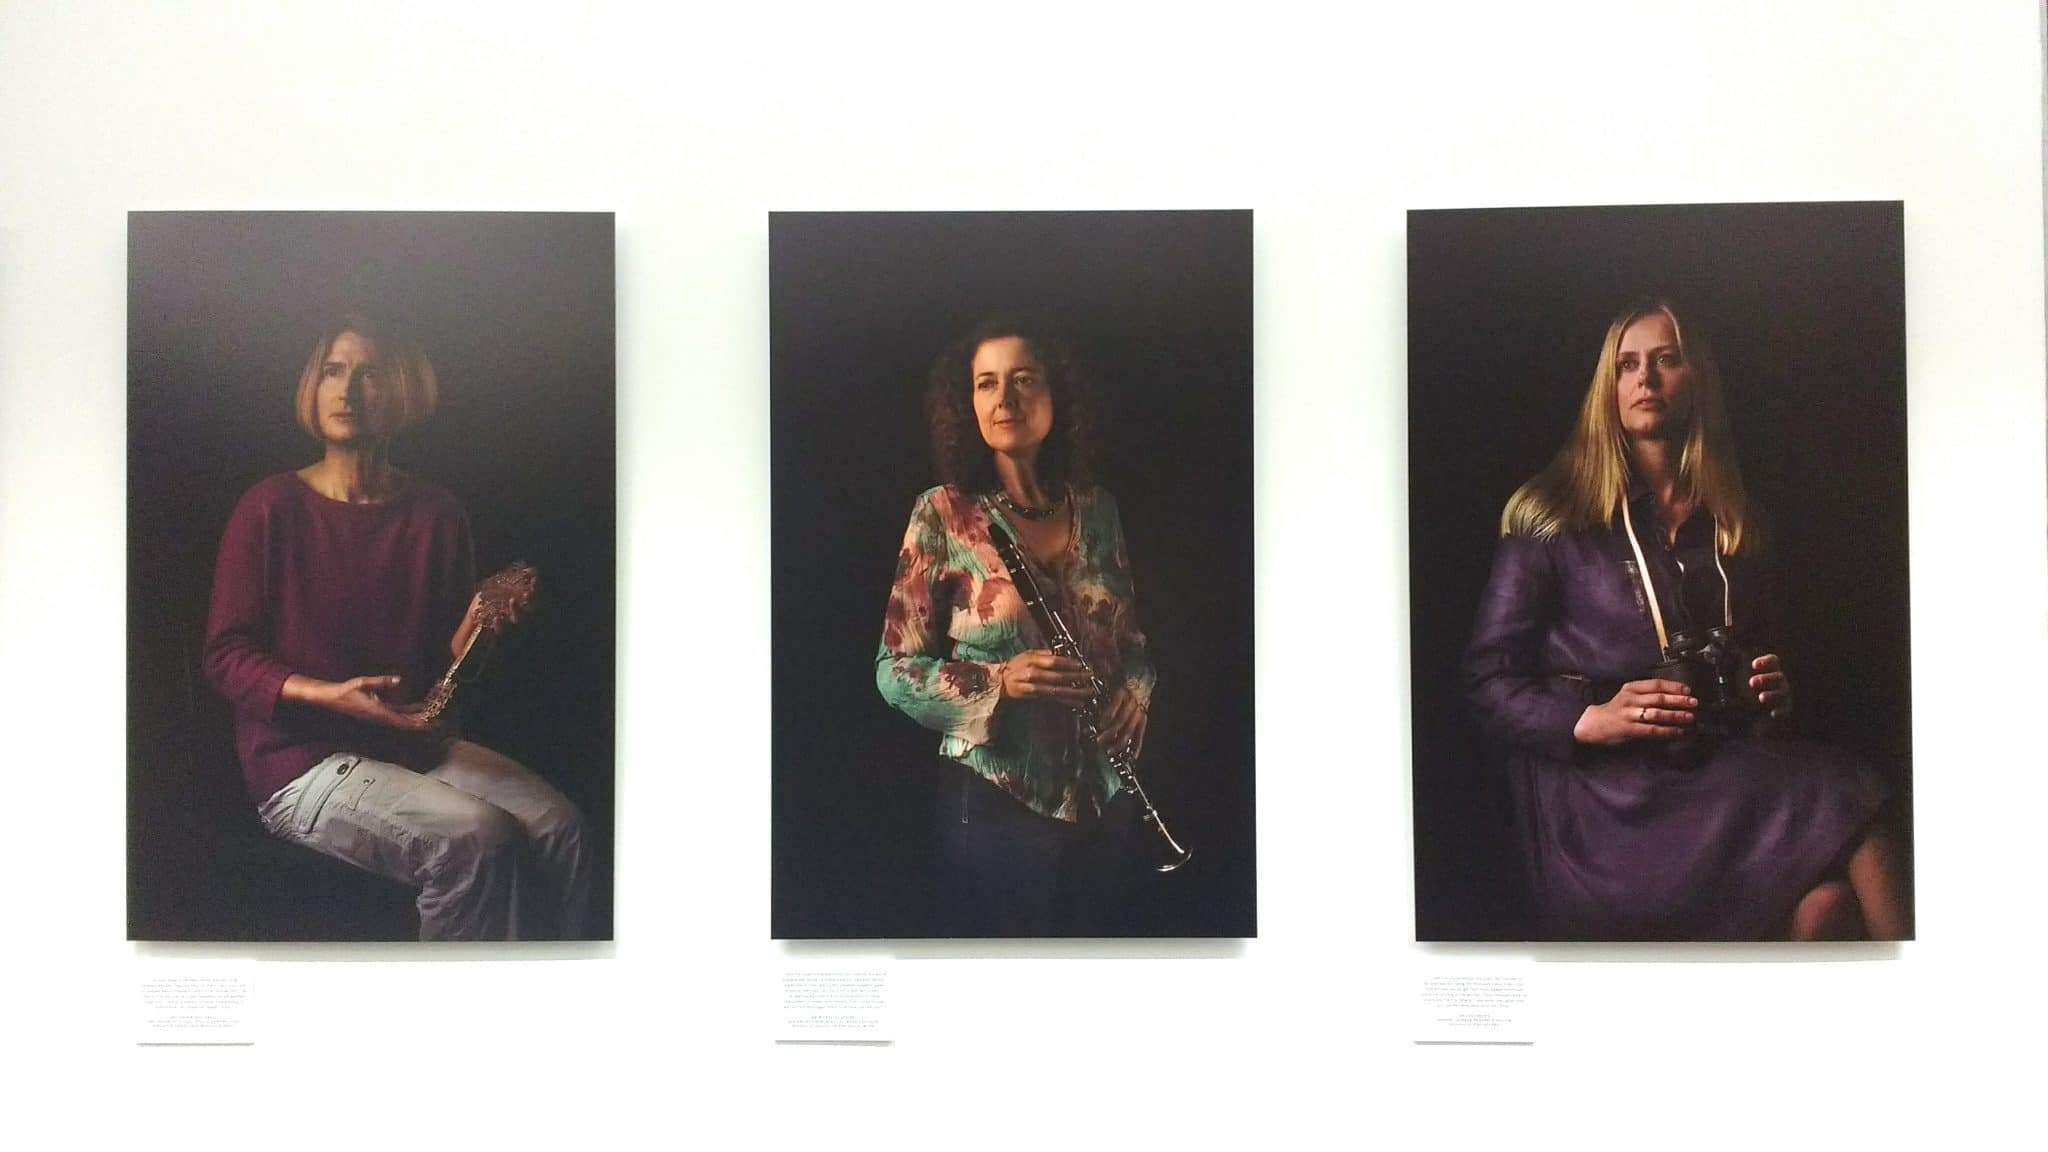 Twelve Women in Academia - a series of photographs printed on aluminium, by artist Miss Aniela. Twelve female academics depicted in the 17th century sober, still life manner, each holding an object significant to them. Installed at The University of Sussex and exhibited in the library on campus in Falmer